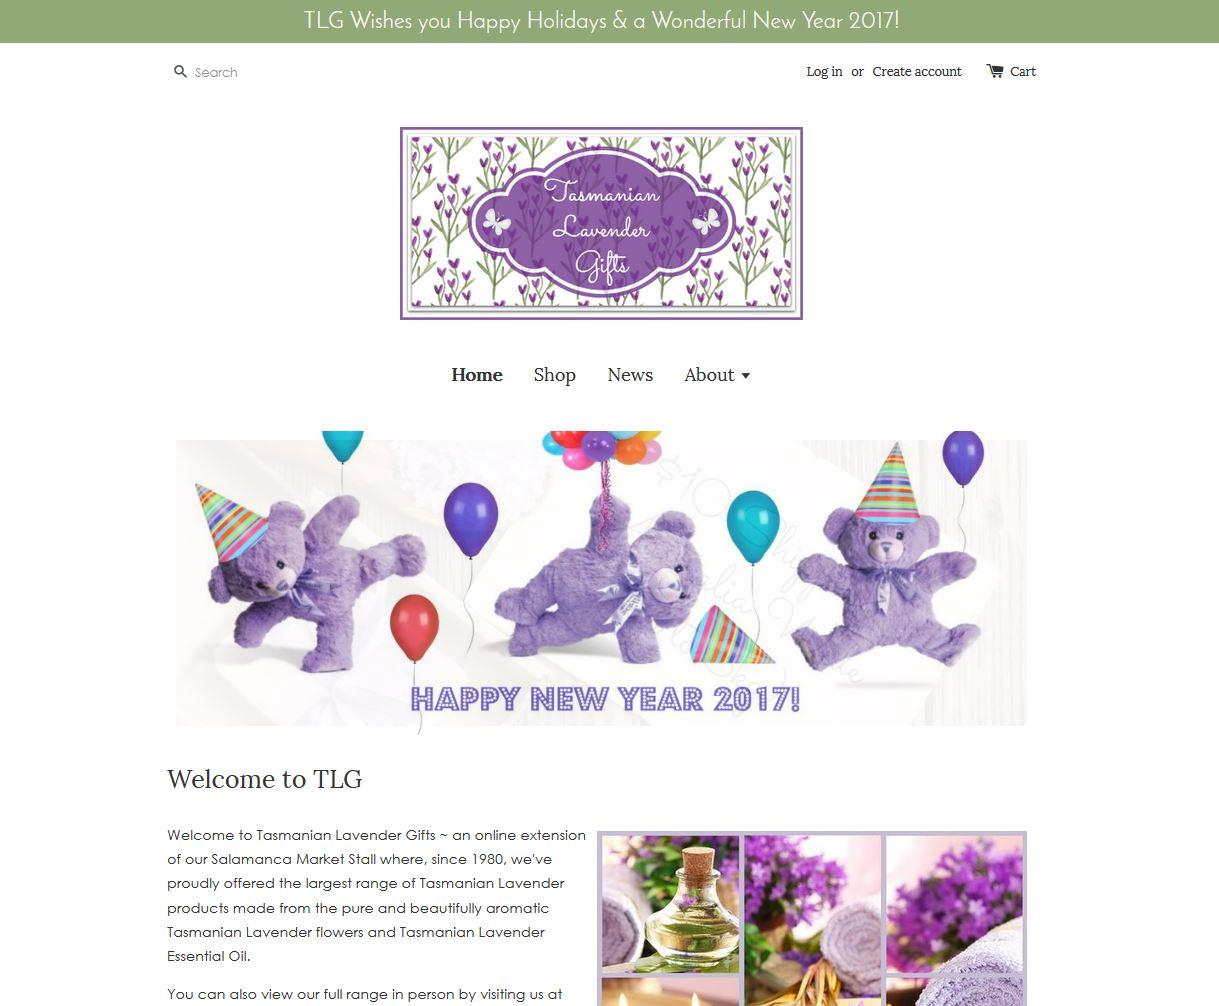 Tasmanian Lavender Gifts - website migration